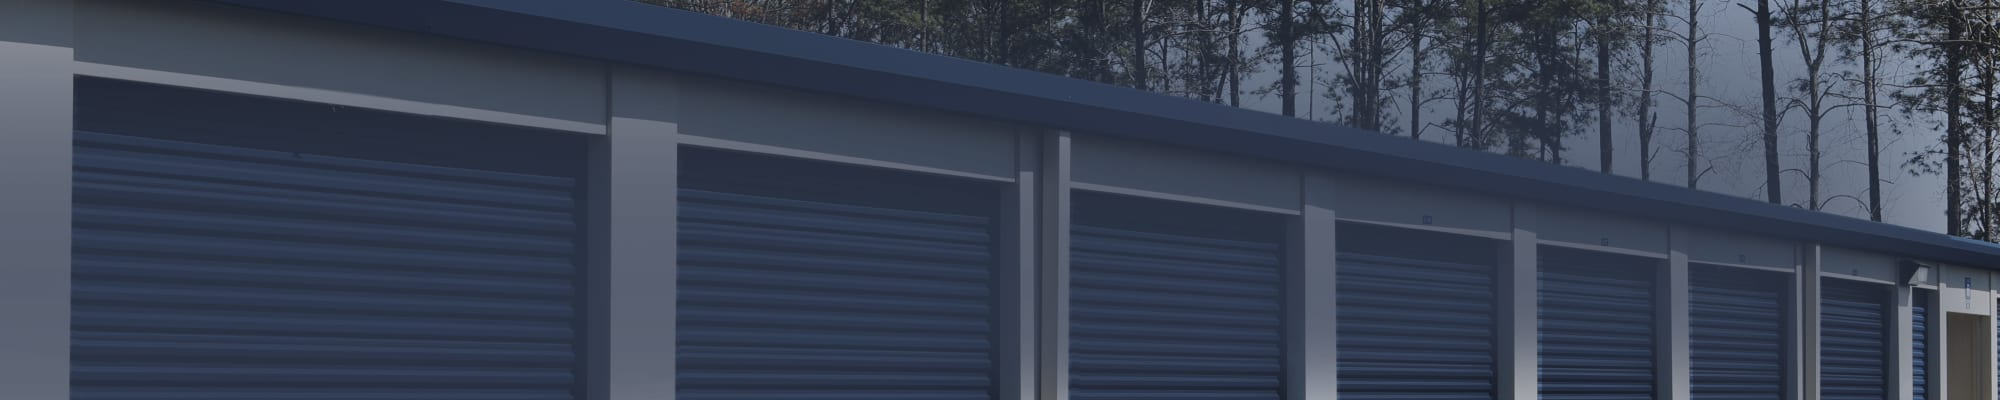 Self storage solutions in Eastanollee, Georgia